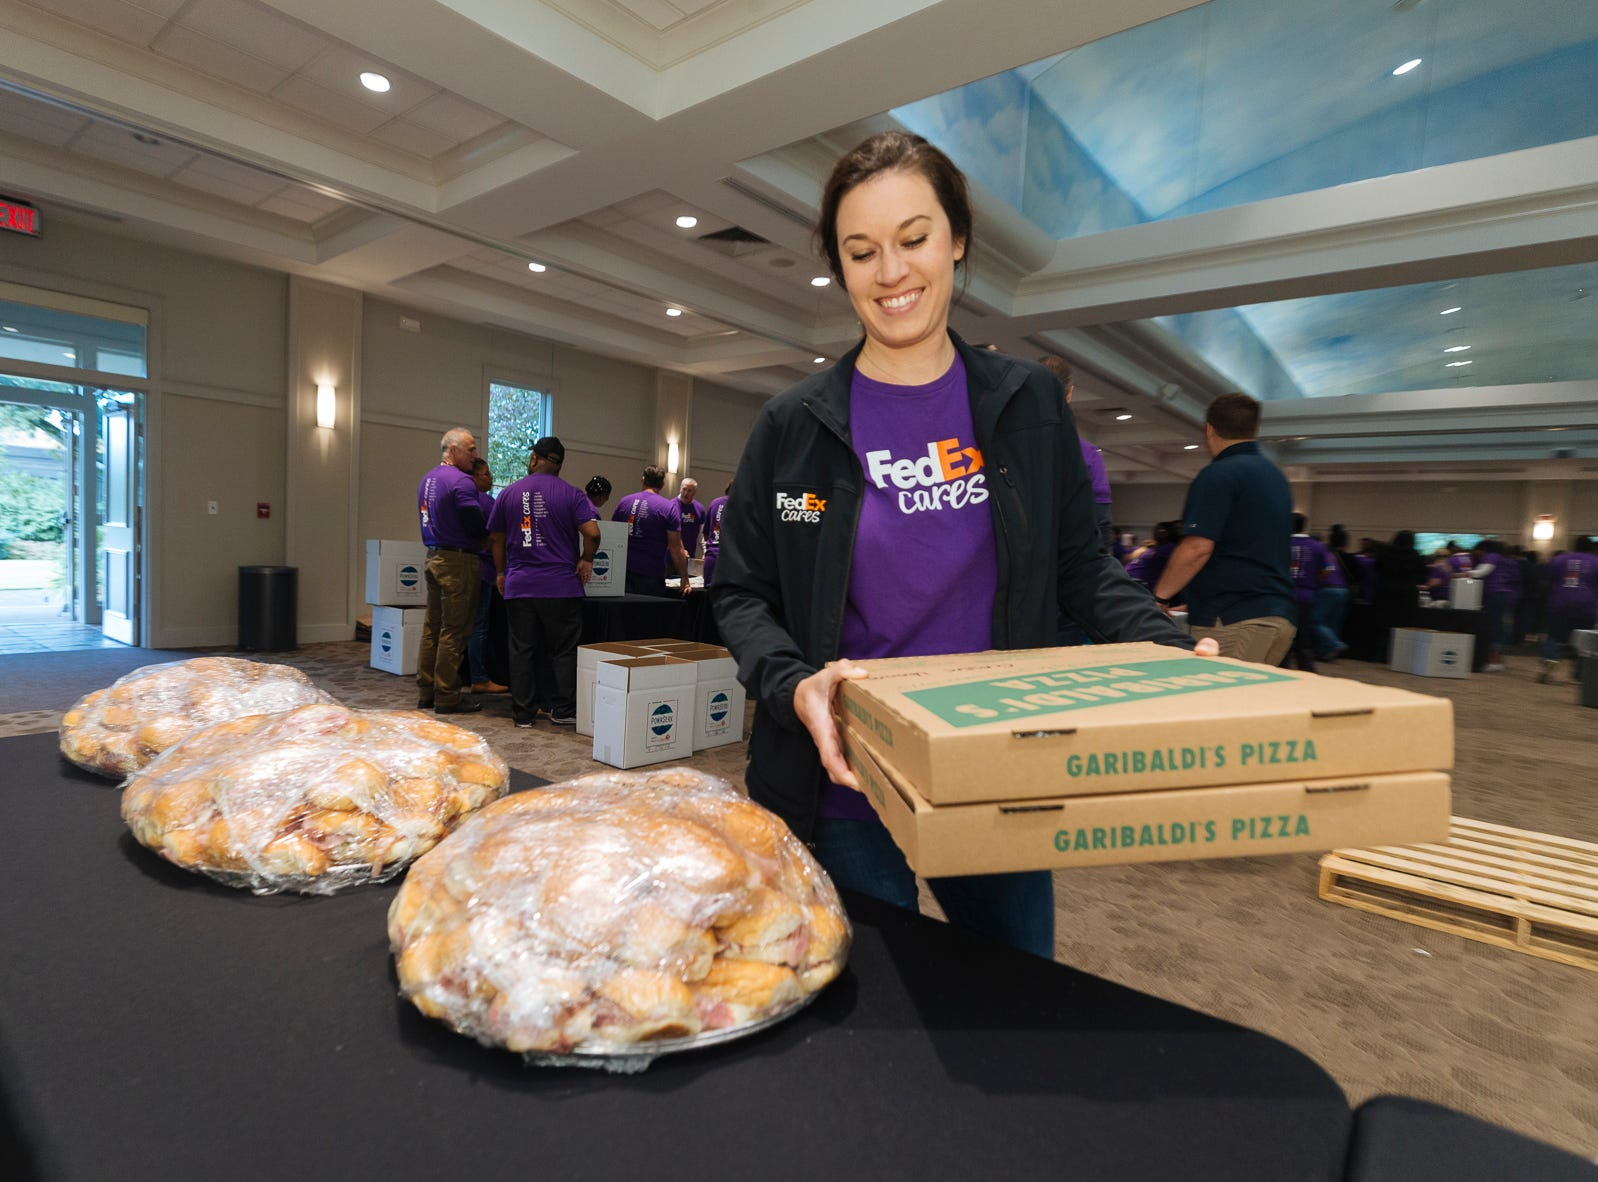 FedEx volunteers prepare lunch for fellow team members nearing the end of the assembly o 3,600 hygiene kits for relief from Hurricanes Florence and  Michael.